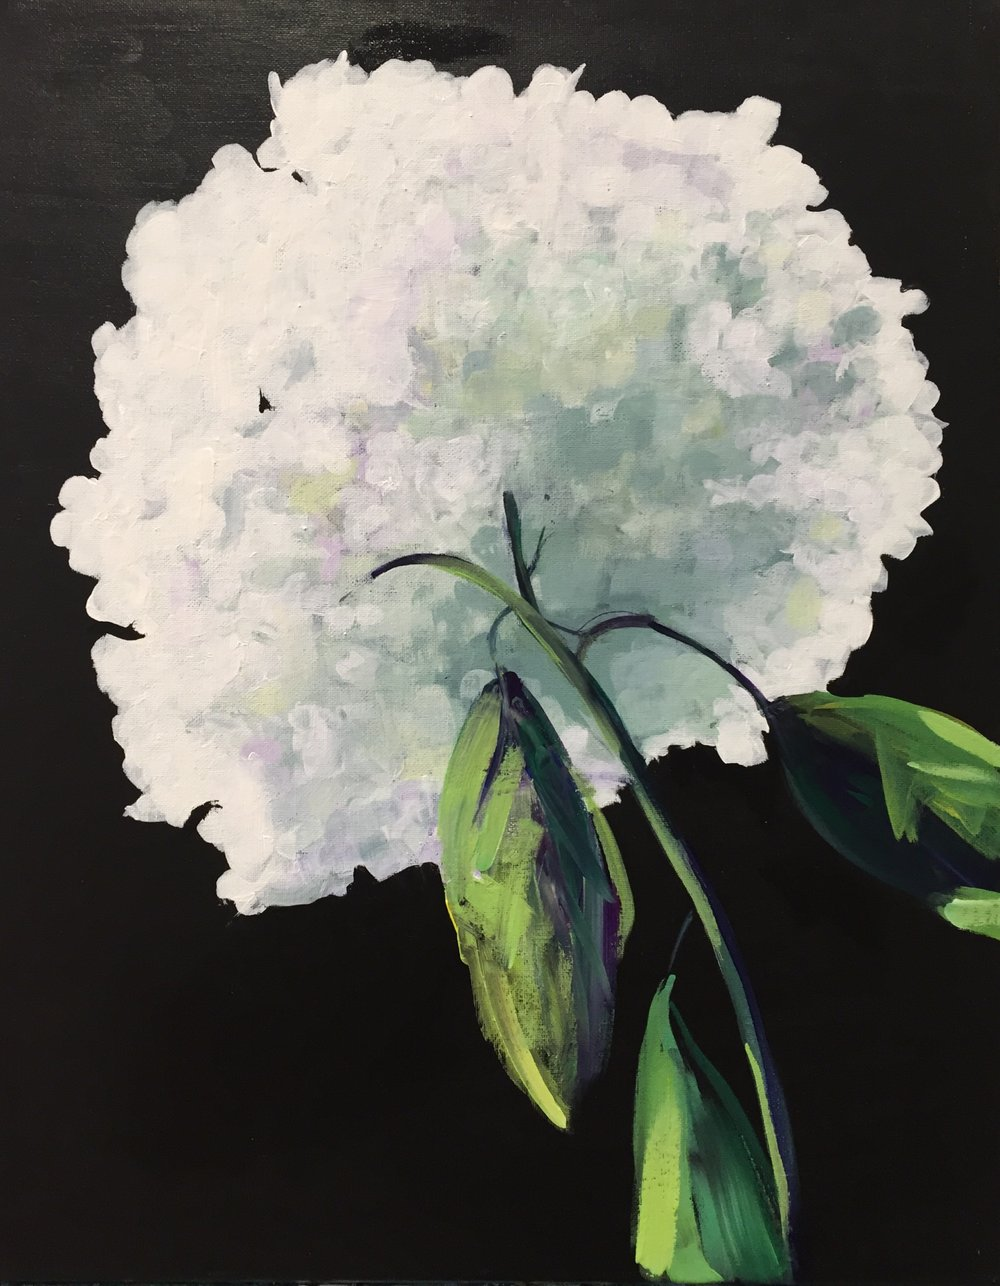 Hydrangea - Level: EasyDate: Friday, May 25, 2018Doors at 6:30pmPaint at 7:00pm - 9:00pmLocation: Meikle Studios Social Art HousePrice: $50/ guestIncludes: All art stuff and wine or beer! Marionette Winery Pinot Noir, Riesling, or Brew Pub Wit or Blonde Ale.